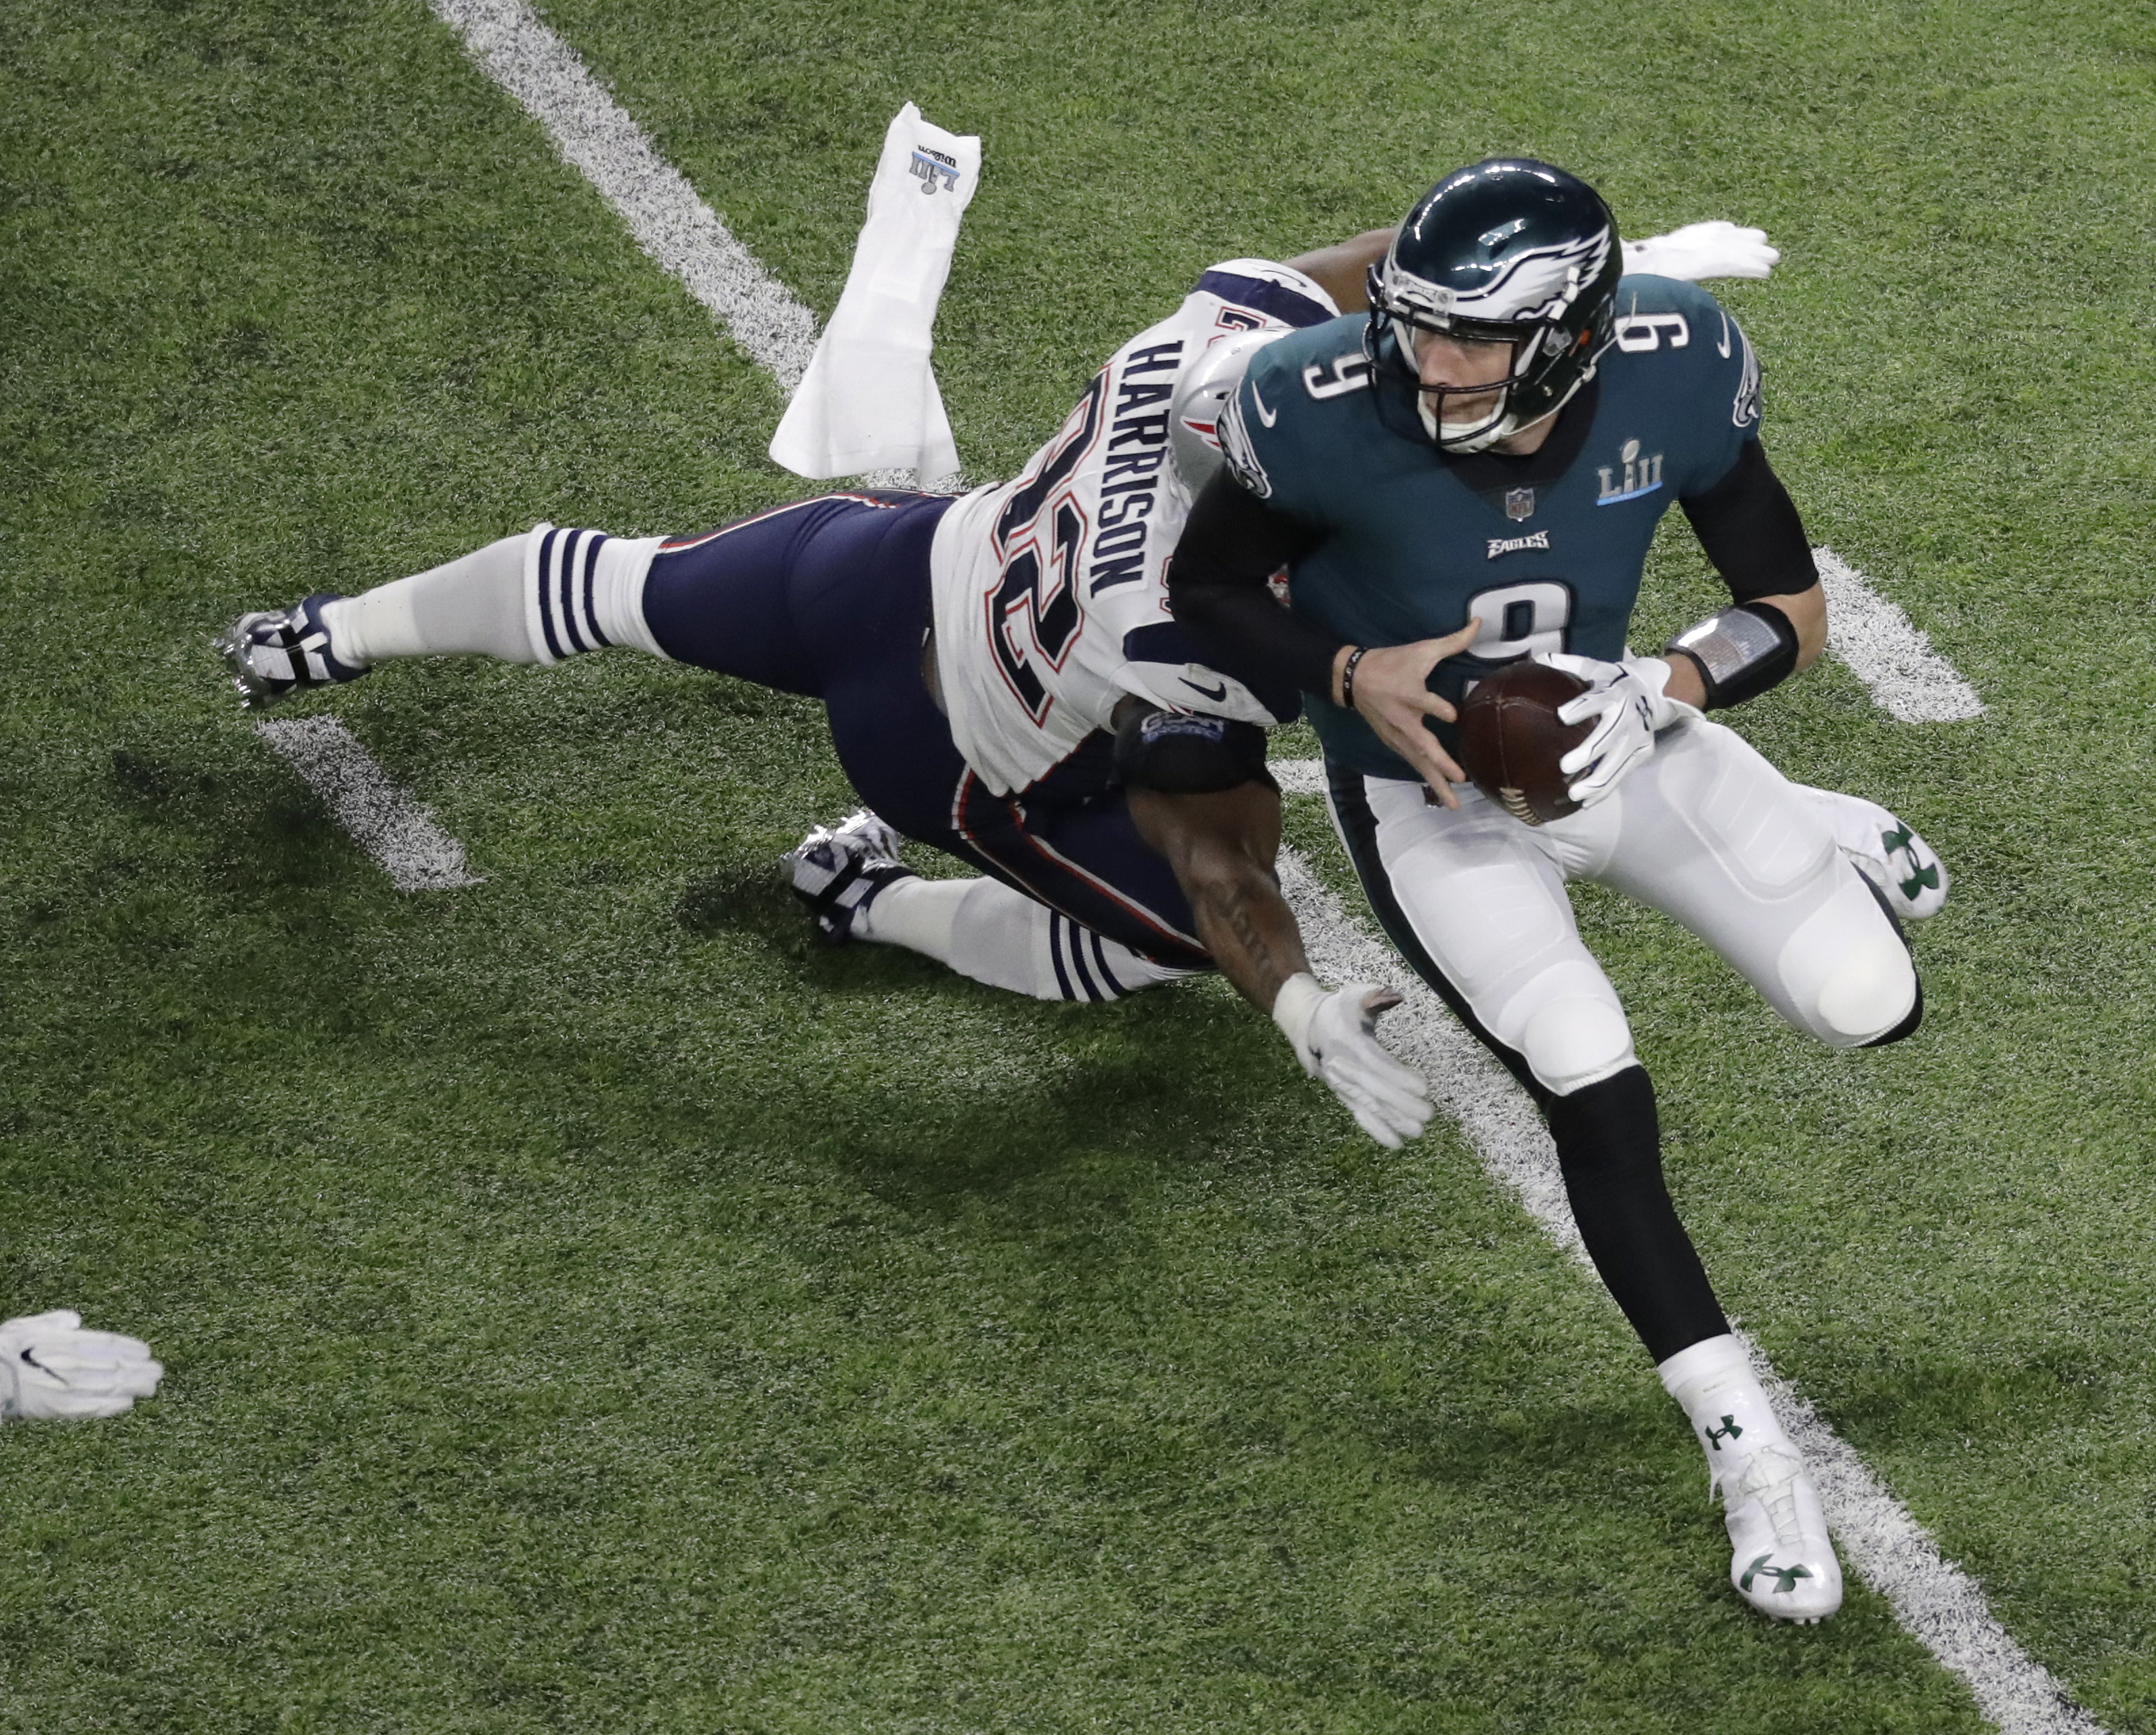 <div class='meta'><div class='origin-logo' data-origin='AP'></div><span class='caption-text' data-credit='AP Photo/Eric Gay'>Philadelphia Eagles quarterback Nick Foles (9) runs around New England Patriots outside linebacker James Harrison during the first half of the NFL Super Bowl 52 football game.</span></div>